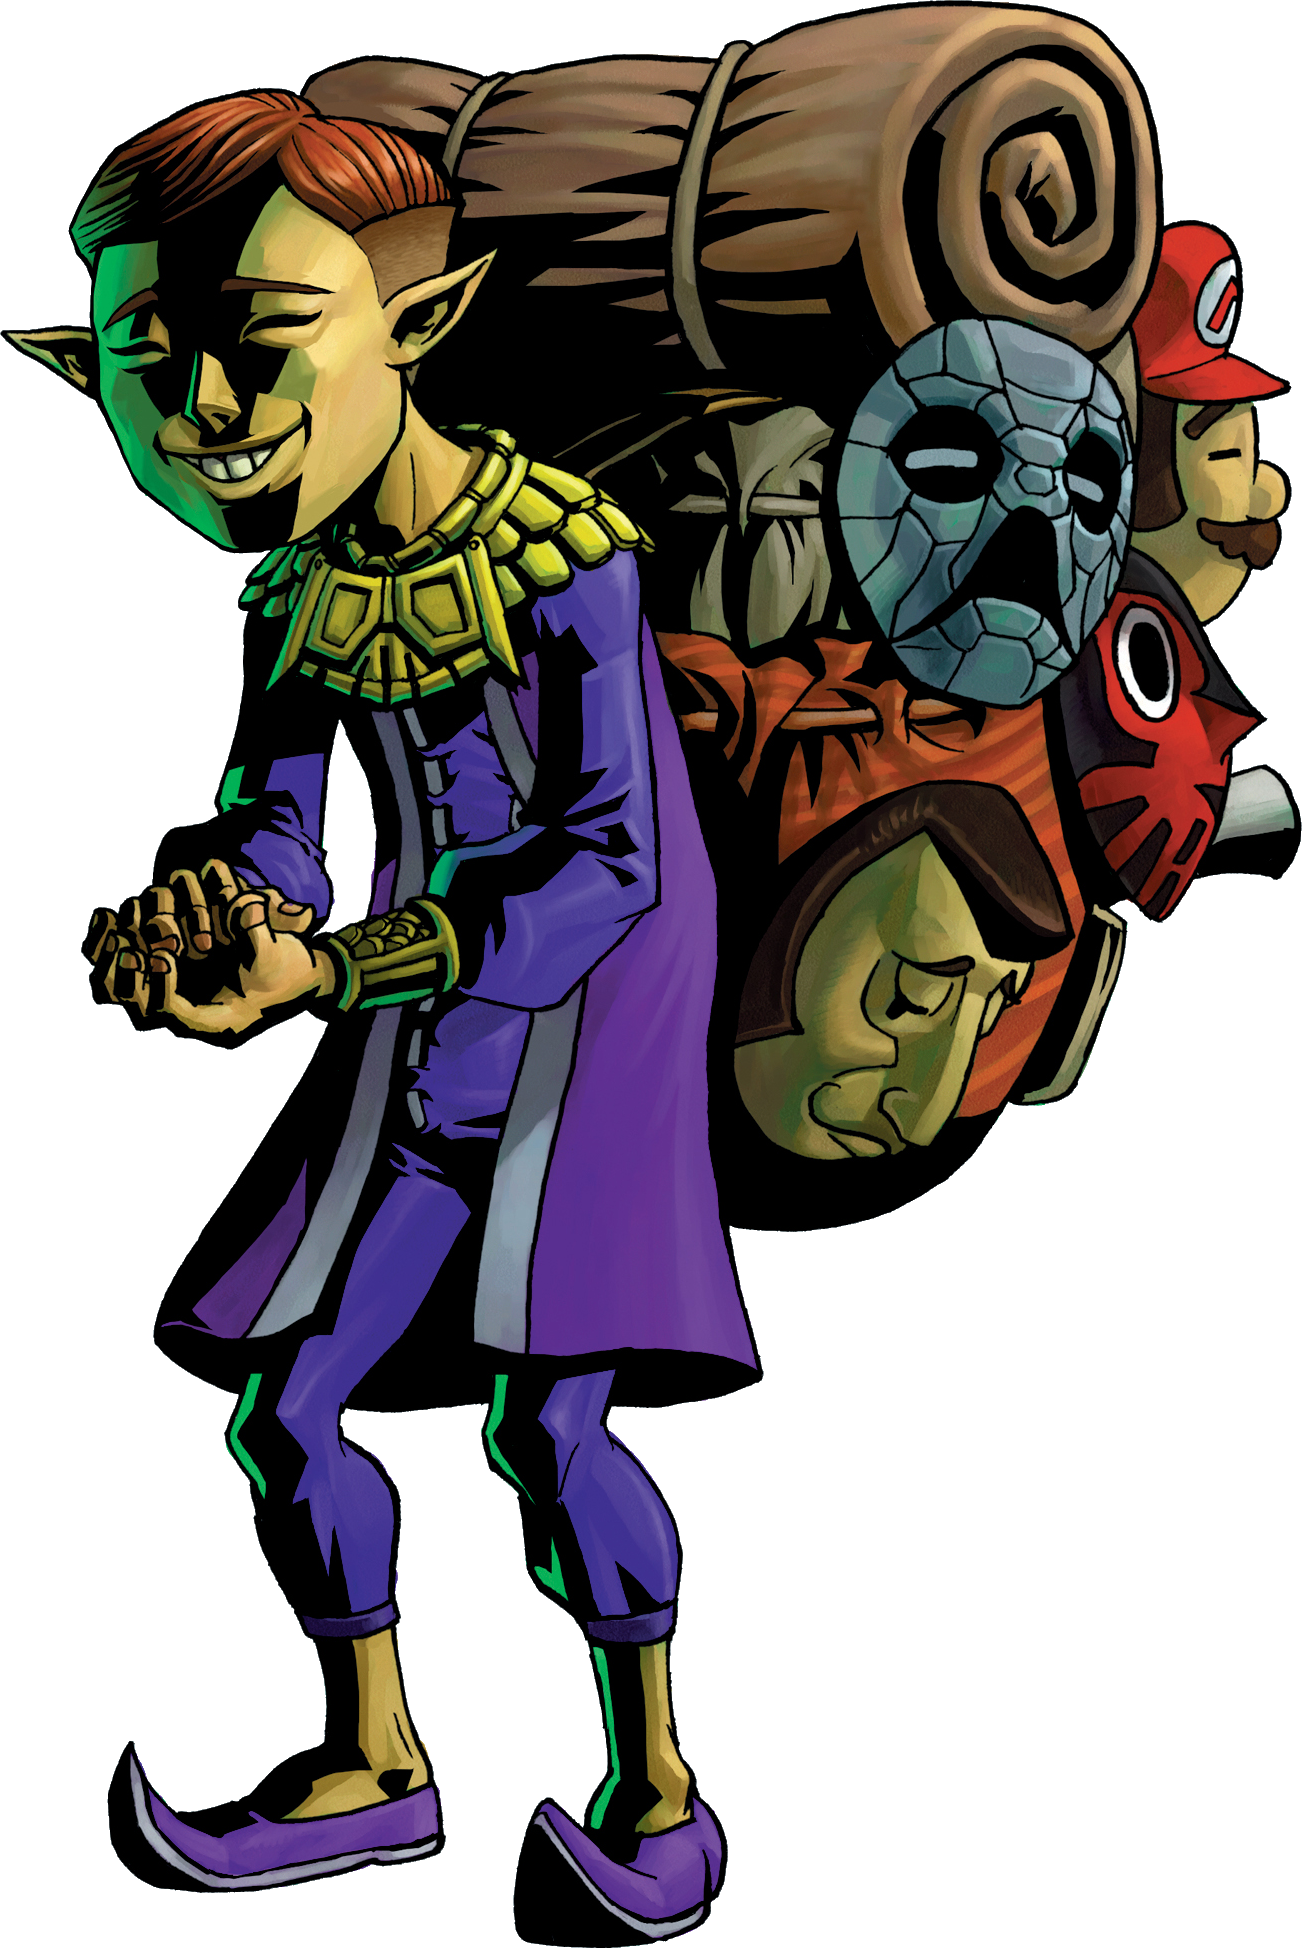 http://vignette3.wikia.nocookie.net/zelda/images/3/37/Happy_Mask_Salesman_Artwork_%28Majora%27s_Mask%29.png/revision/latest?cb=20111101130747